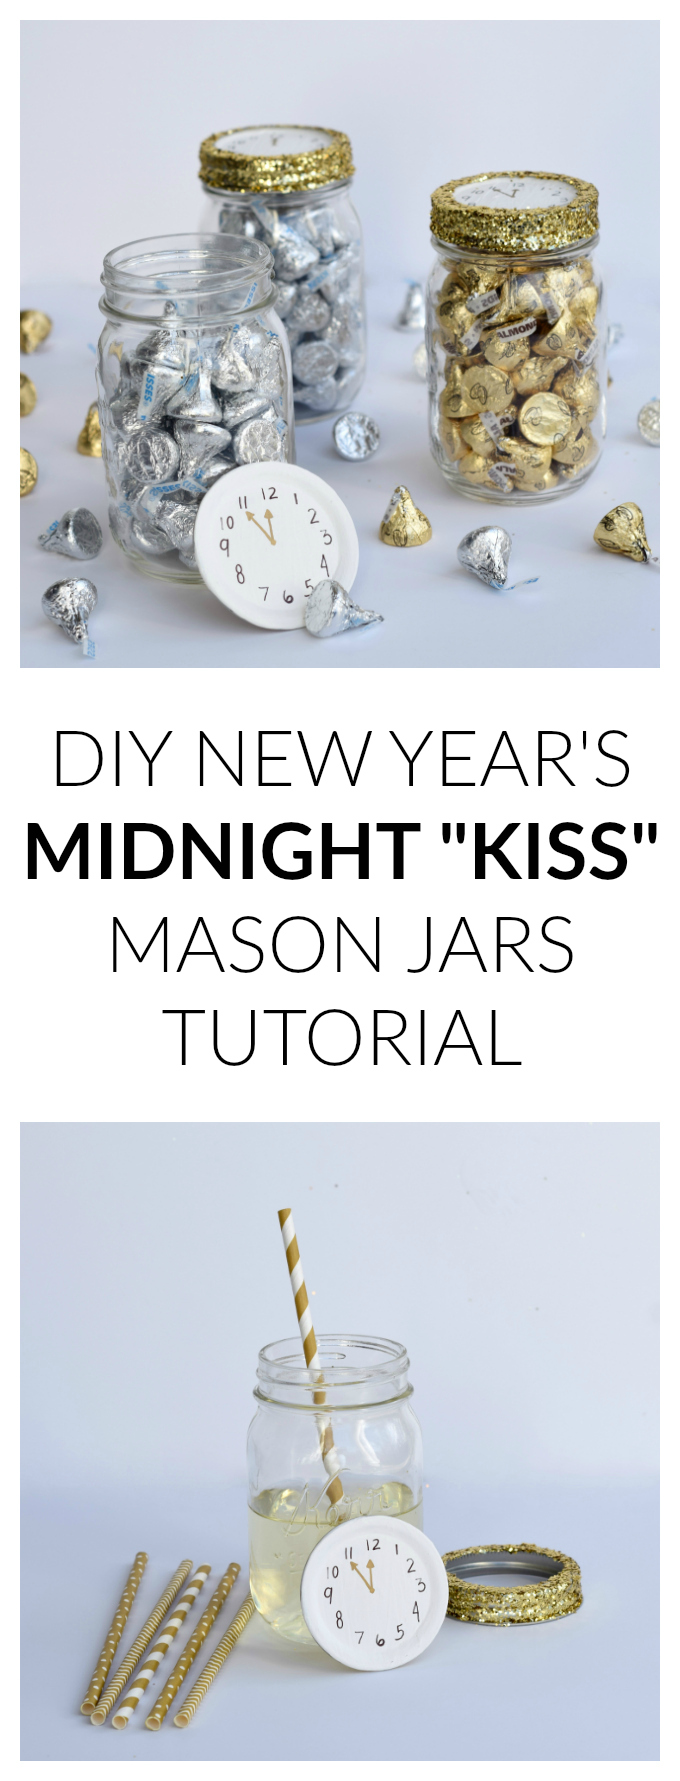 DIY NEW YEAR'S MIDNIGHT MASON JARS TUTORIAL